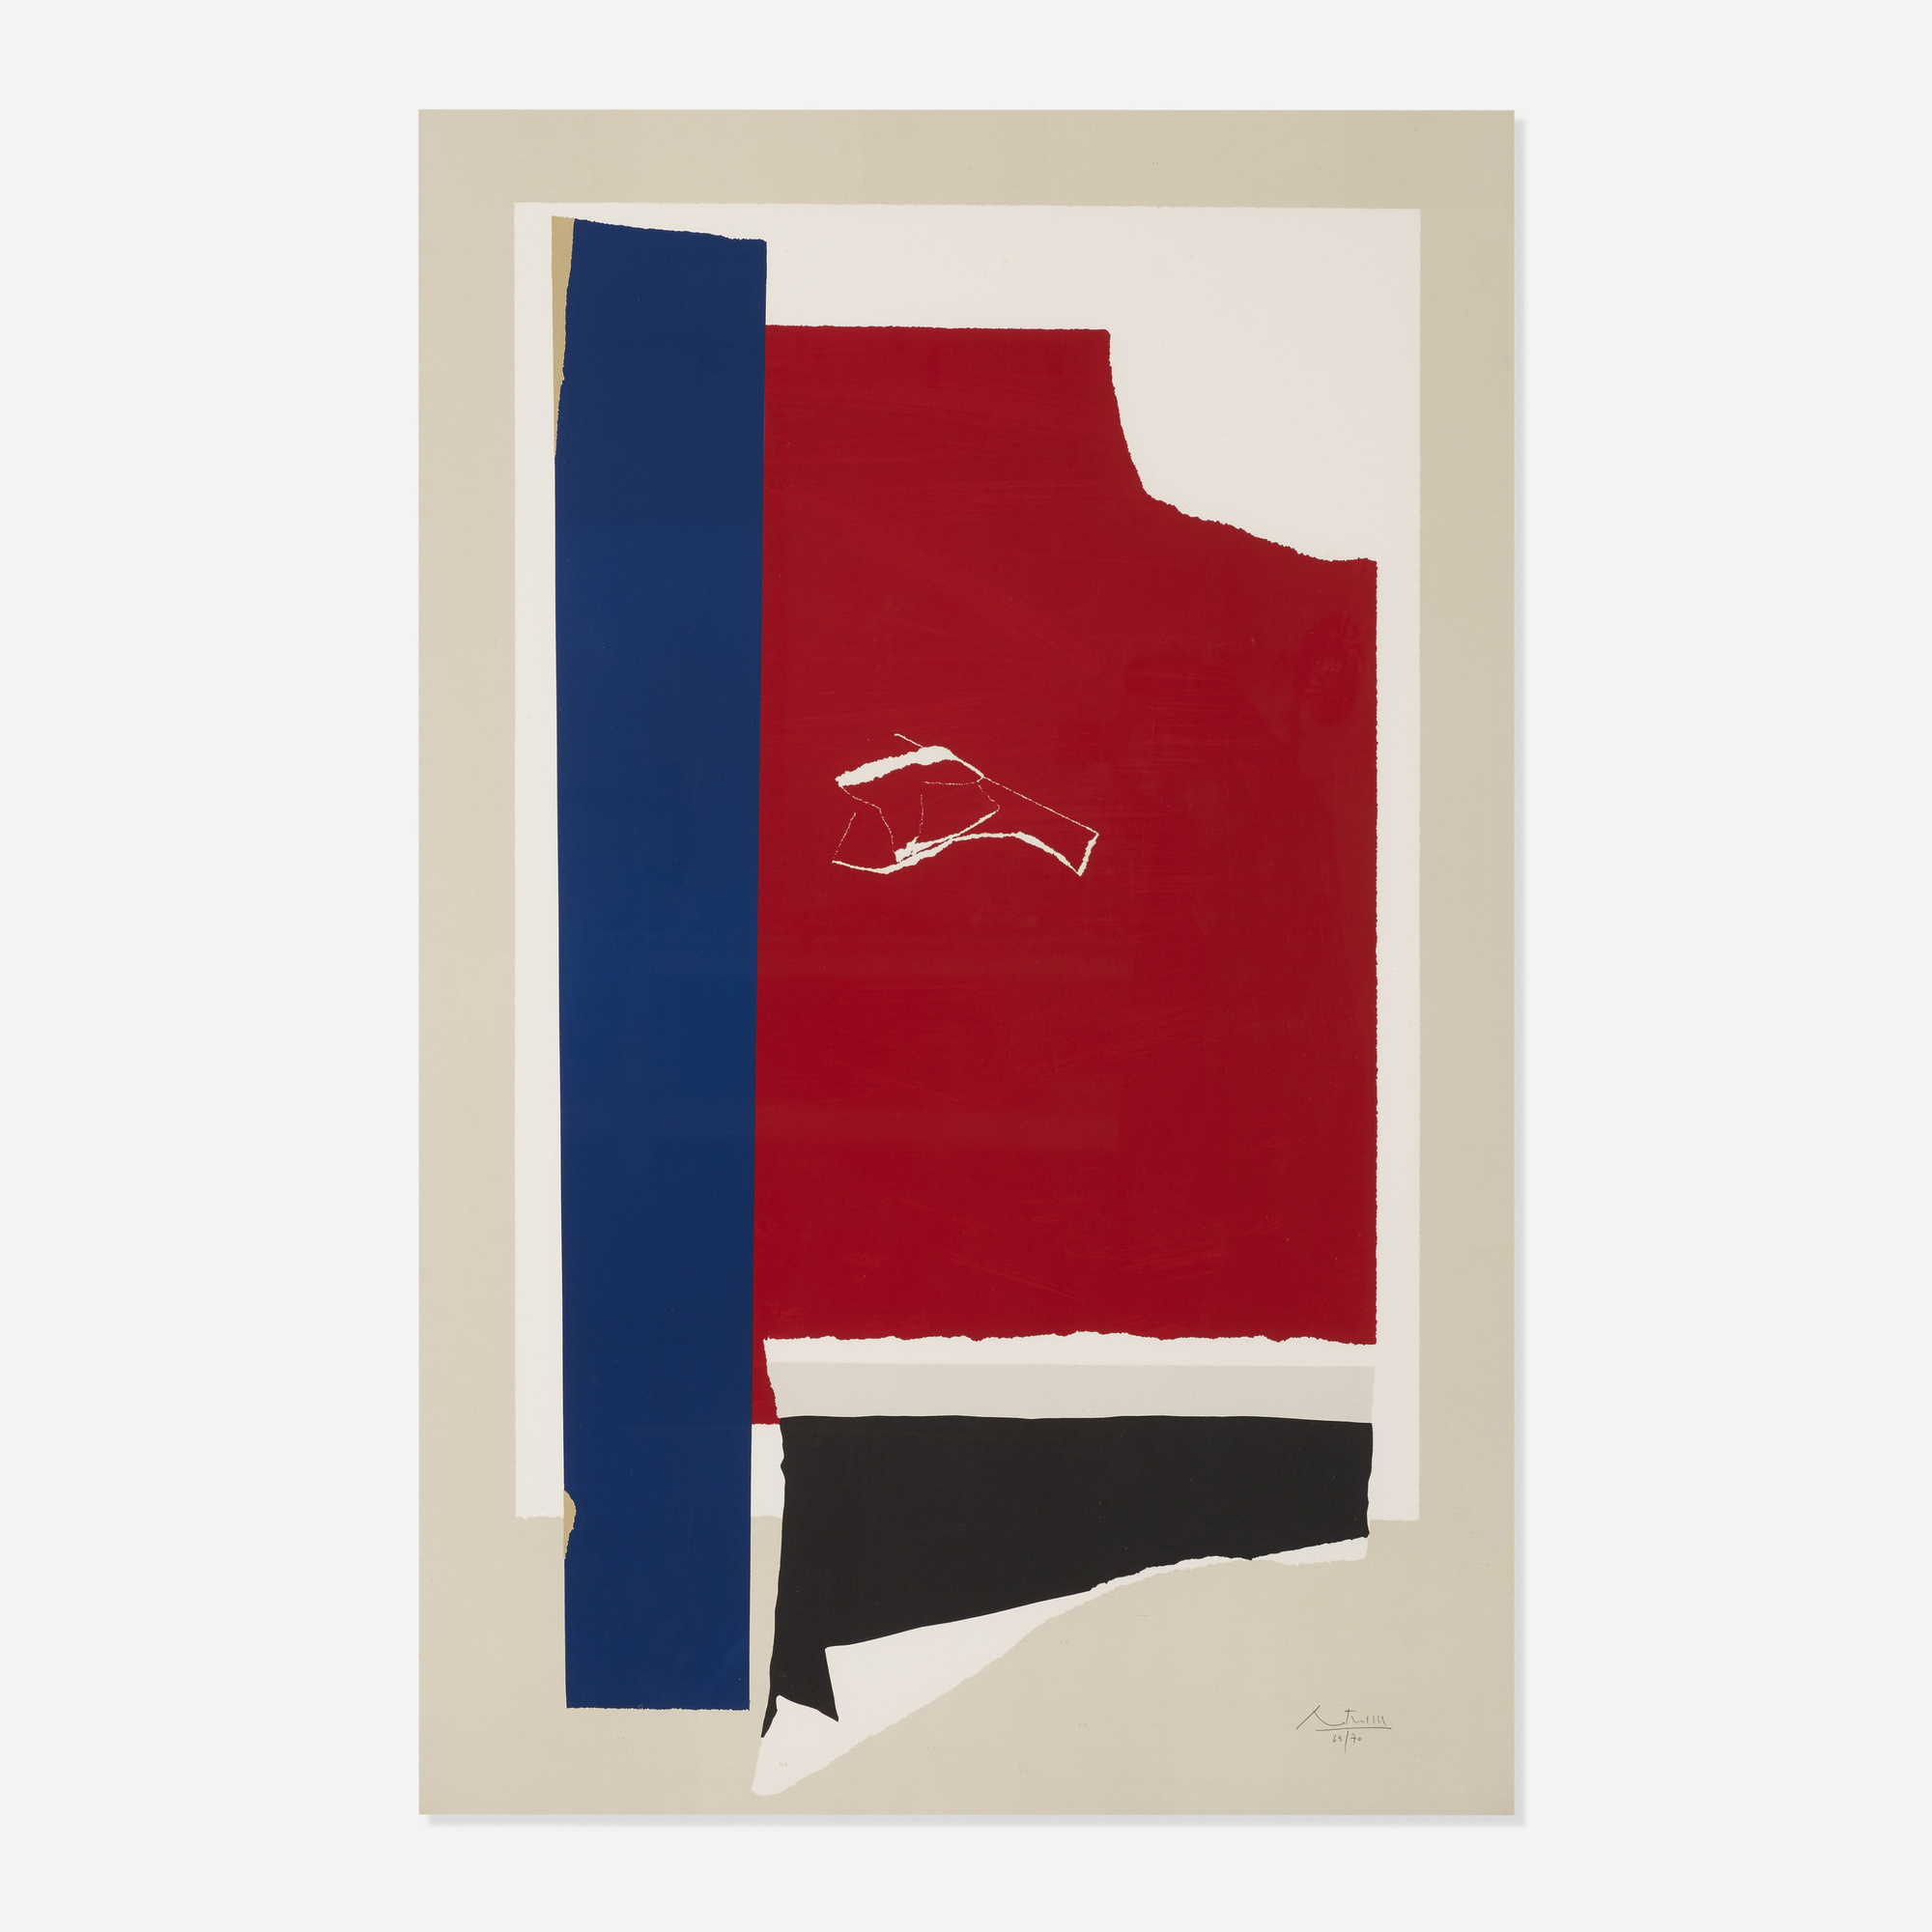 207: Robert Motherwell / On the Wing (1 of 2)